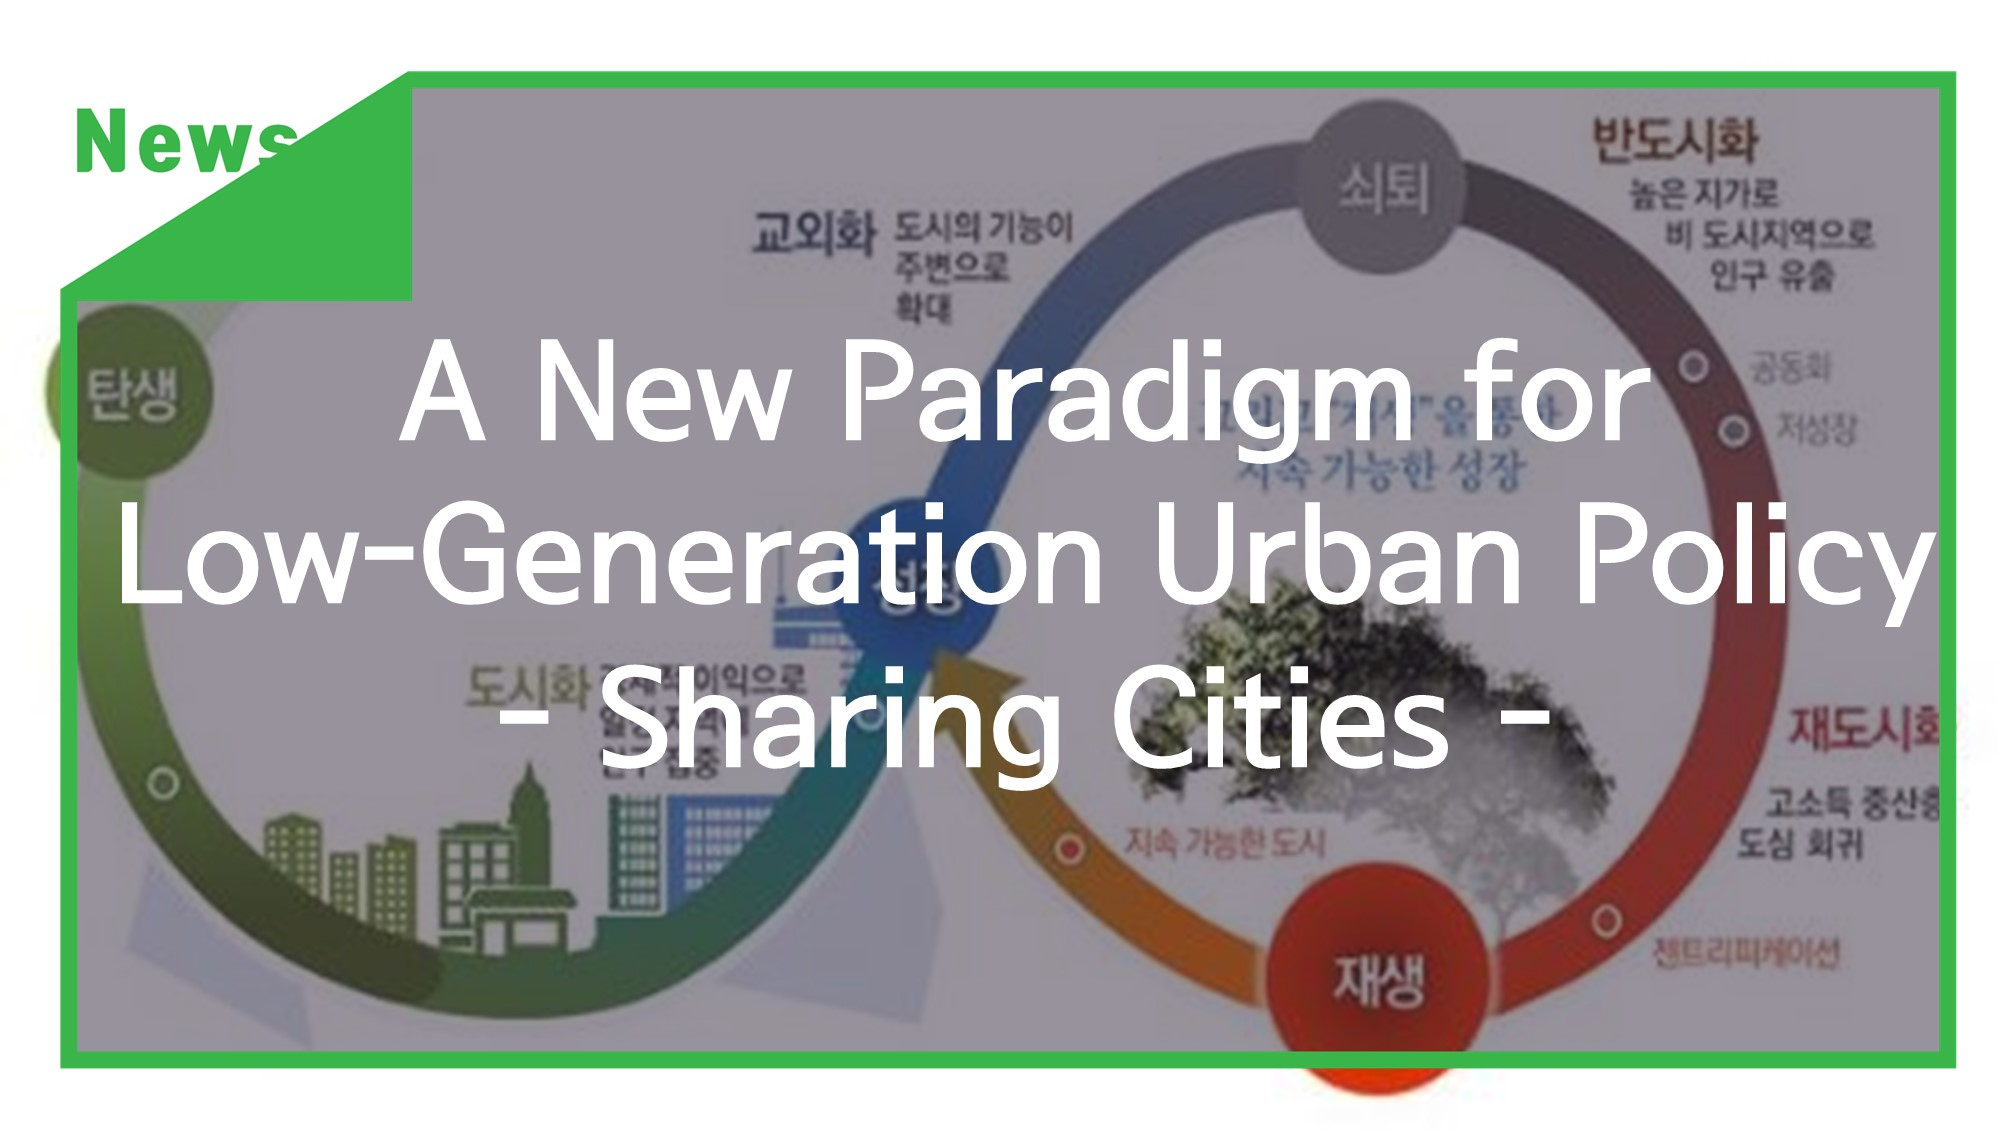 [News] A New Paradigm for Low-Generation Urban Policy - Sharing Cities